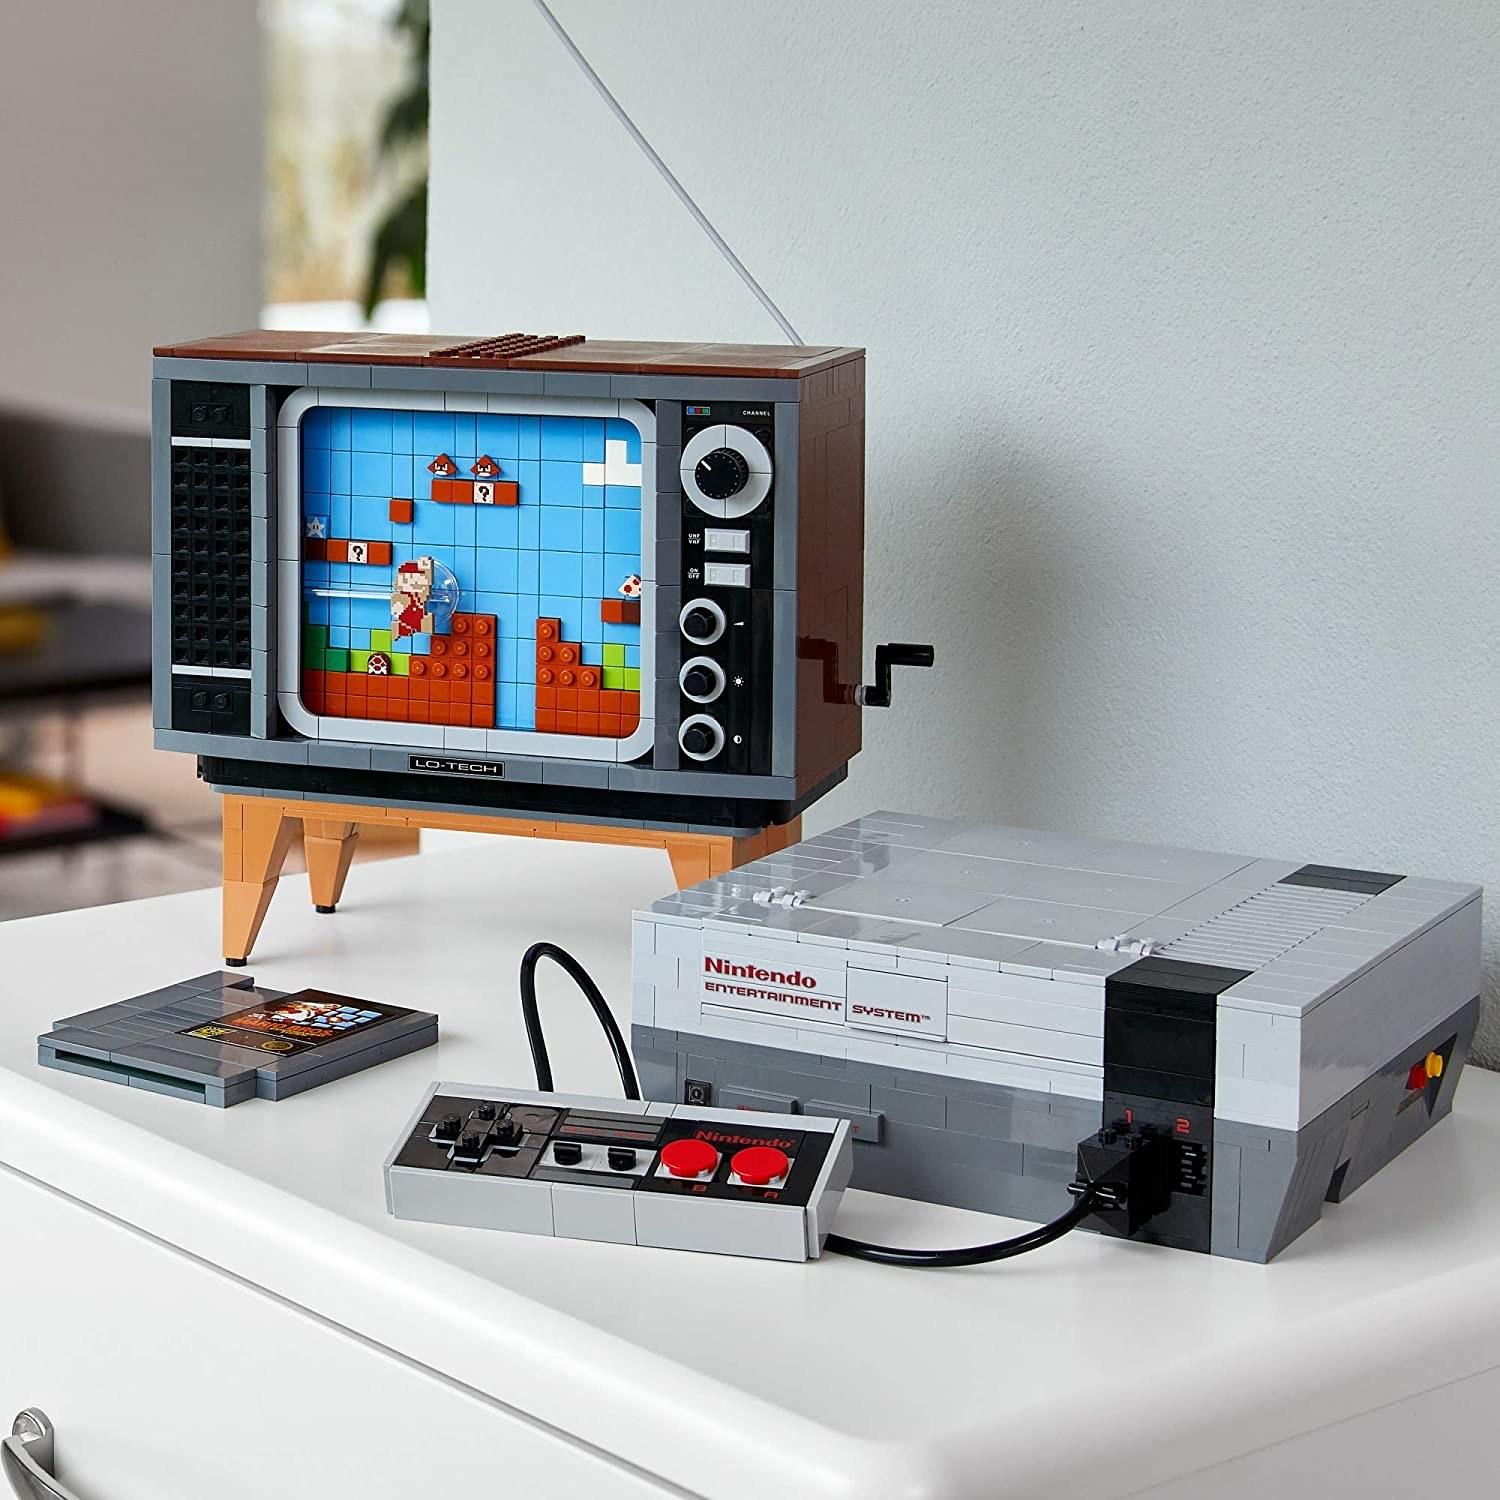 the lego NES system next to a lego tv and game cartridge